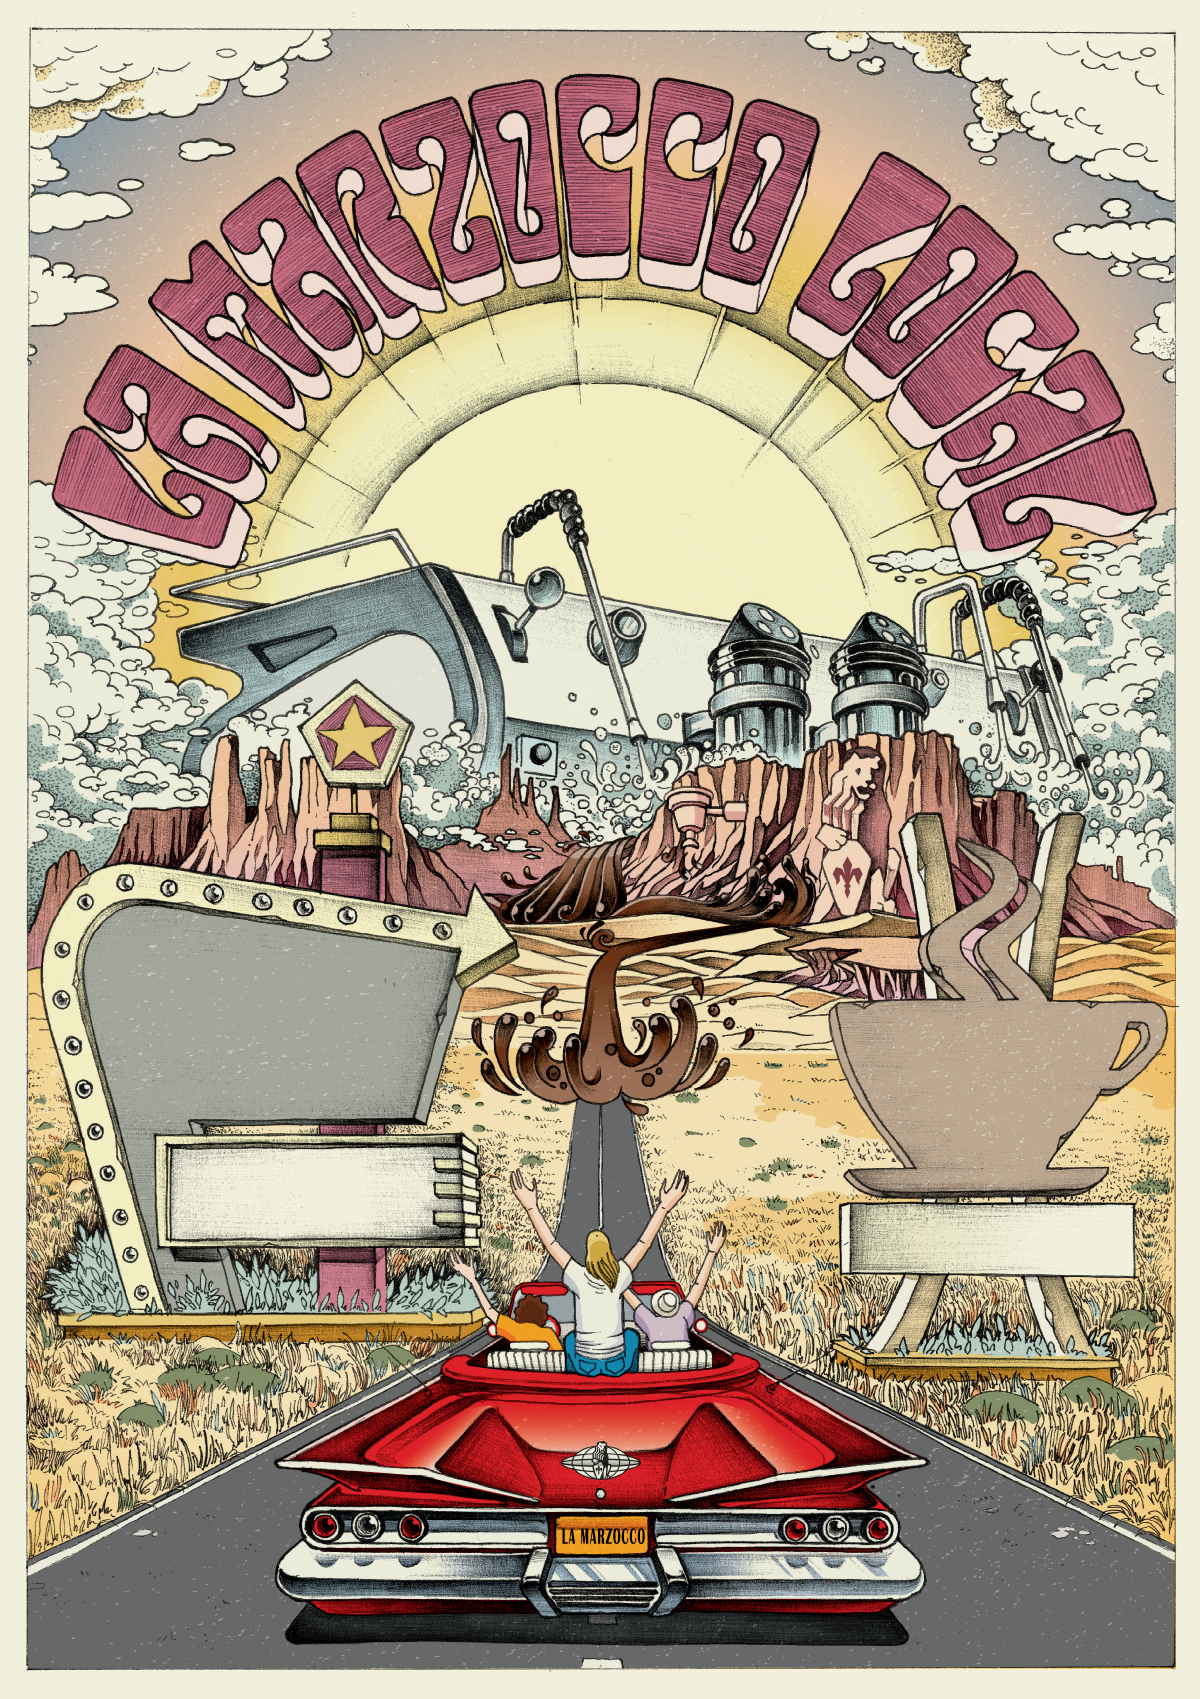 Illustrated/Animated 1960s Desert Road Trip/Psychedelic/Fear & Loathing - La Marzocco Poster